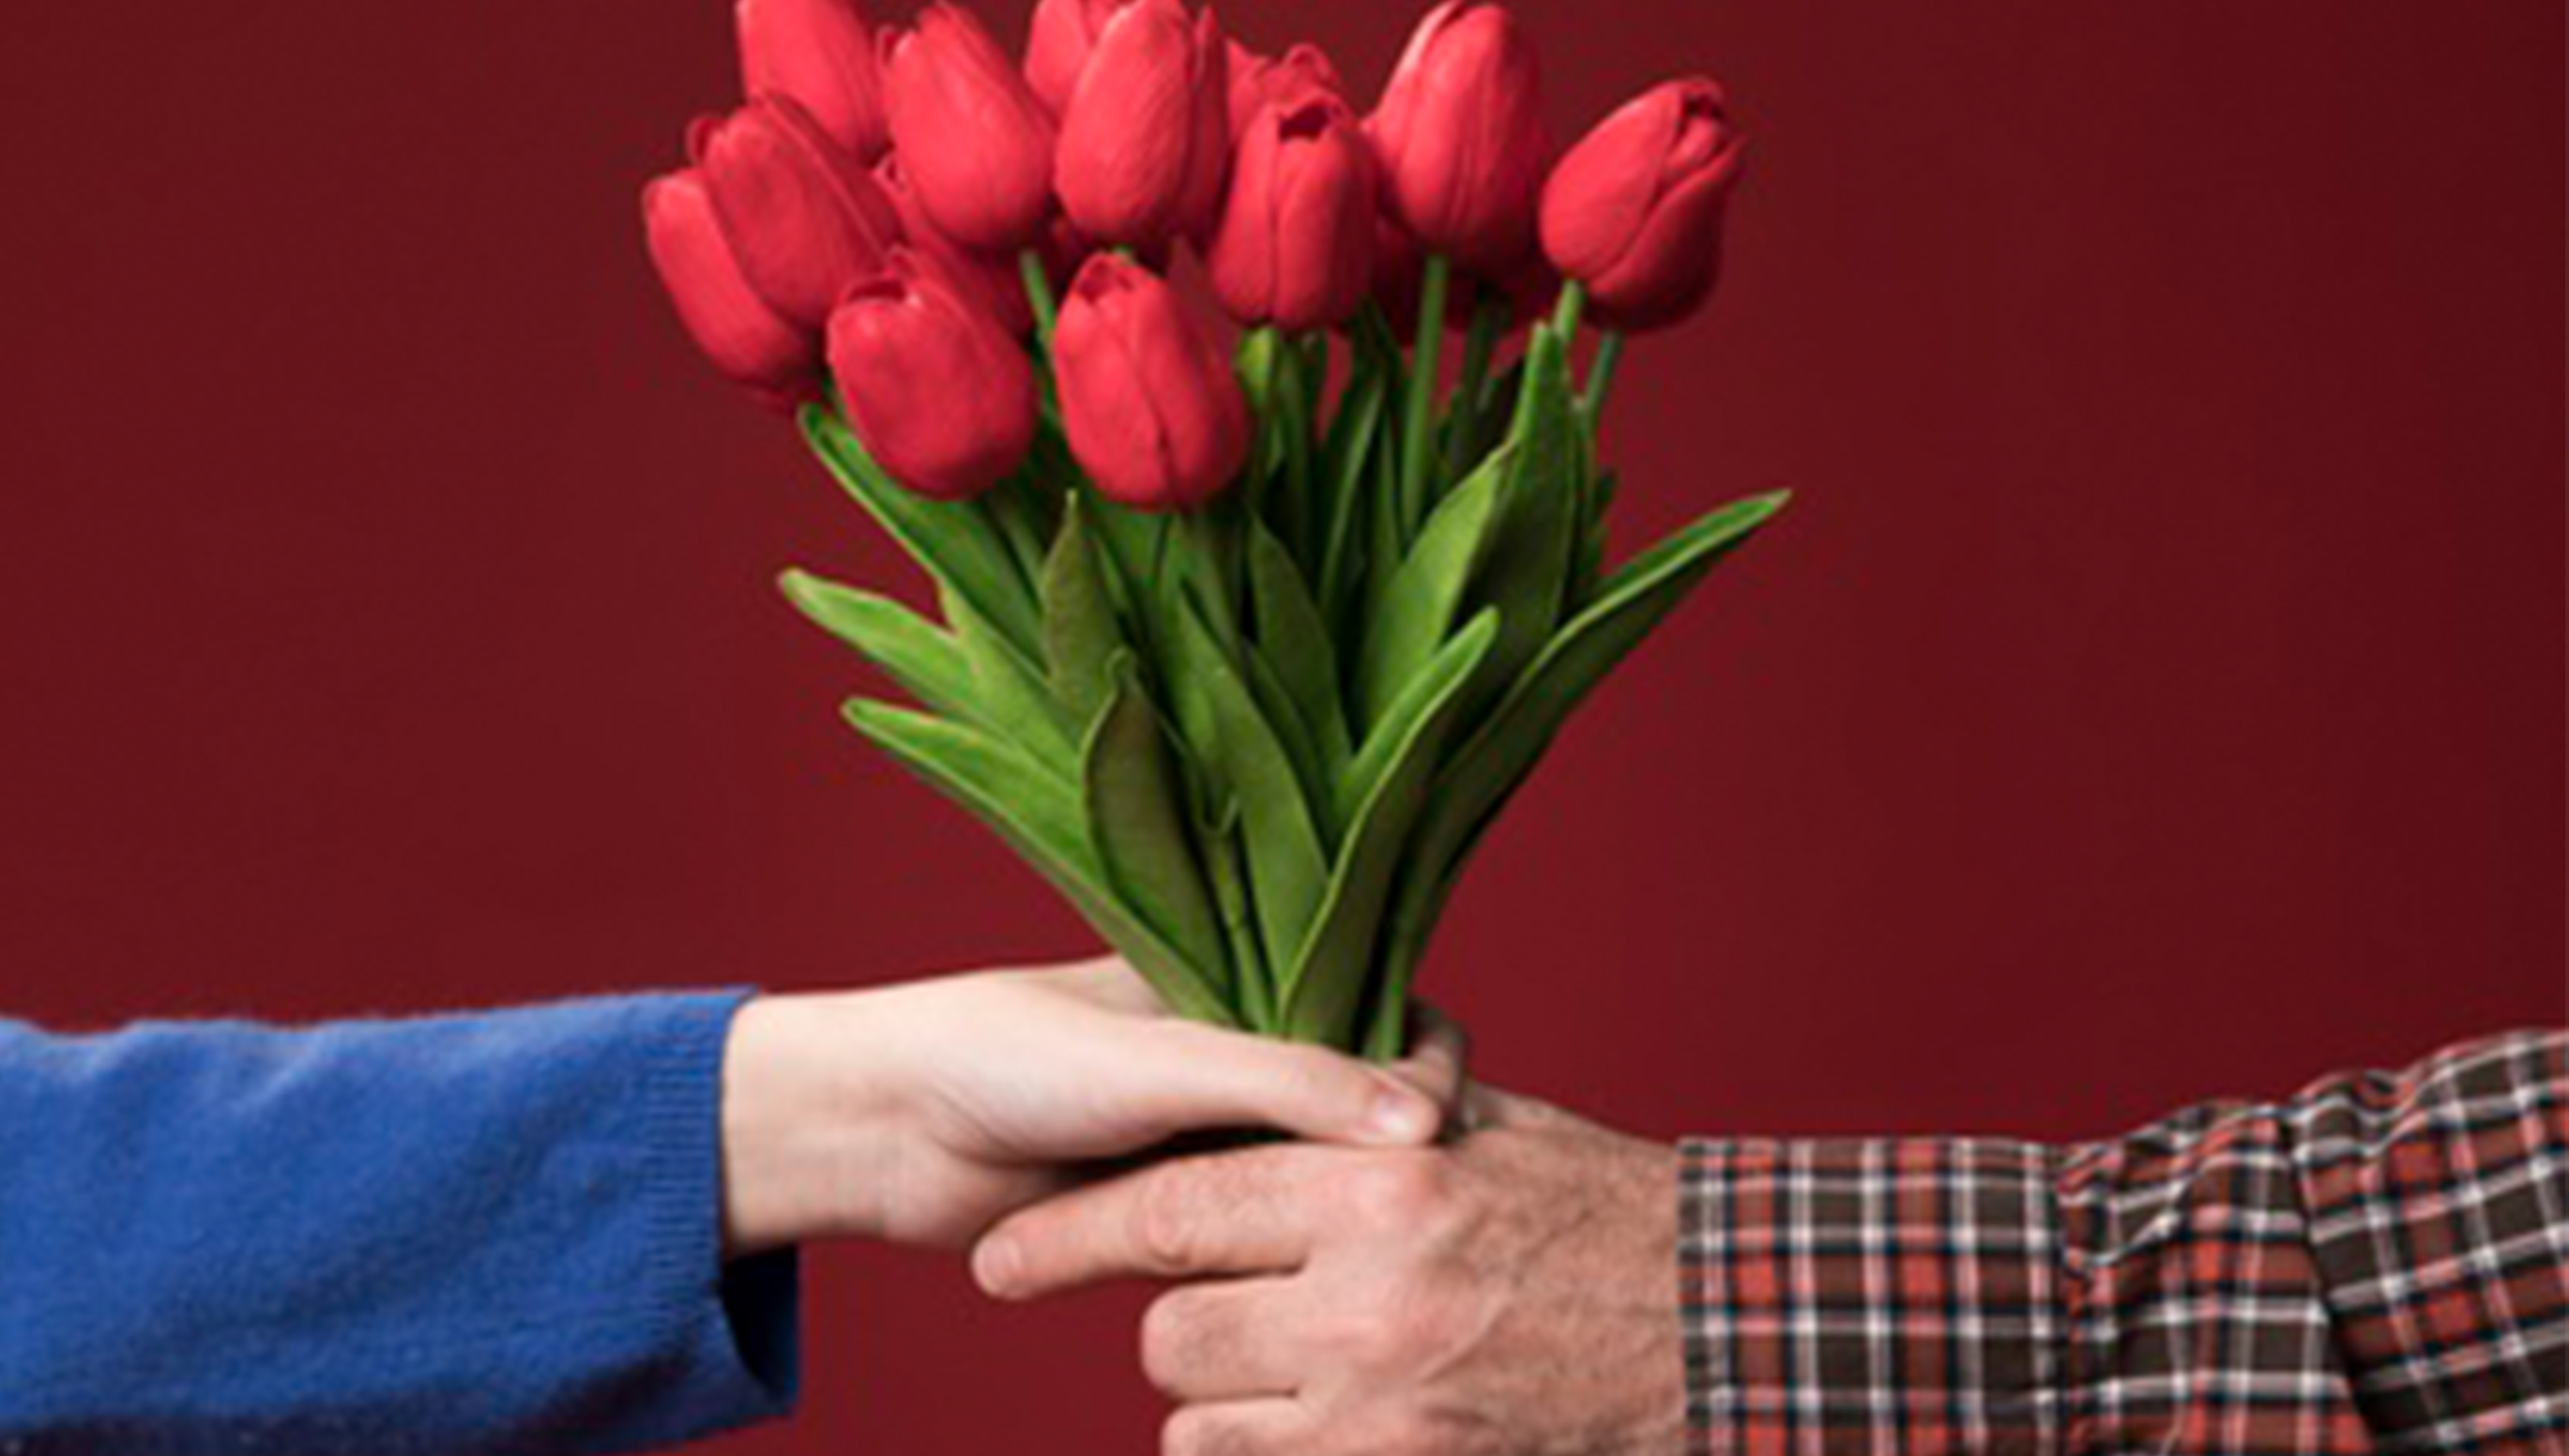 HHow to: Sending Flowers to a Man